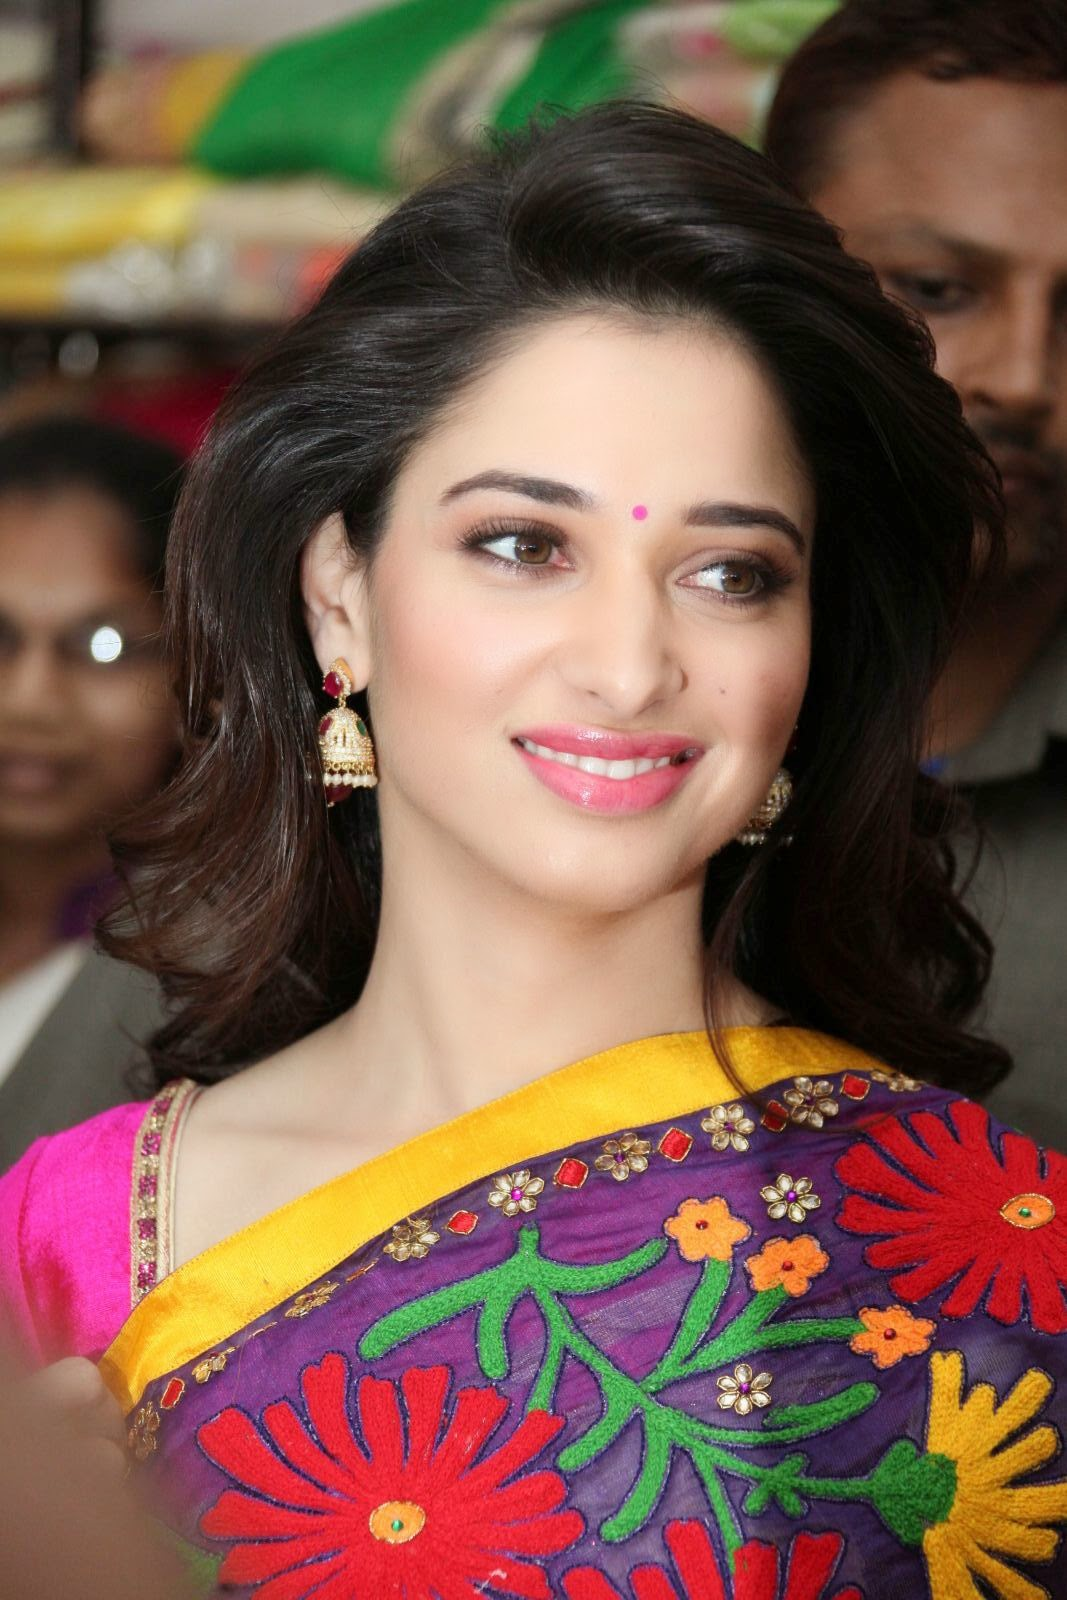 Tamanna Photo Gallery: Tamanna Bhatia Photo Gallery